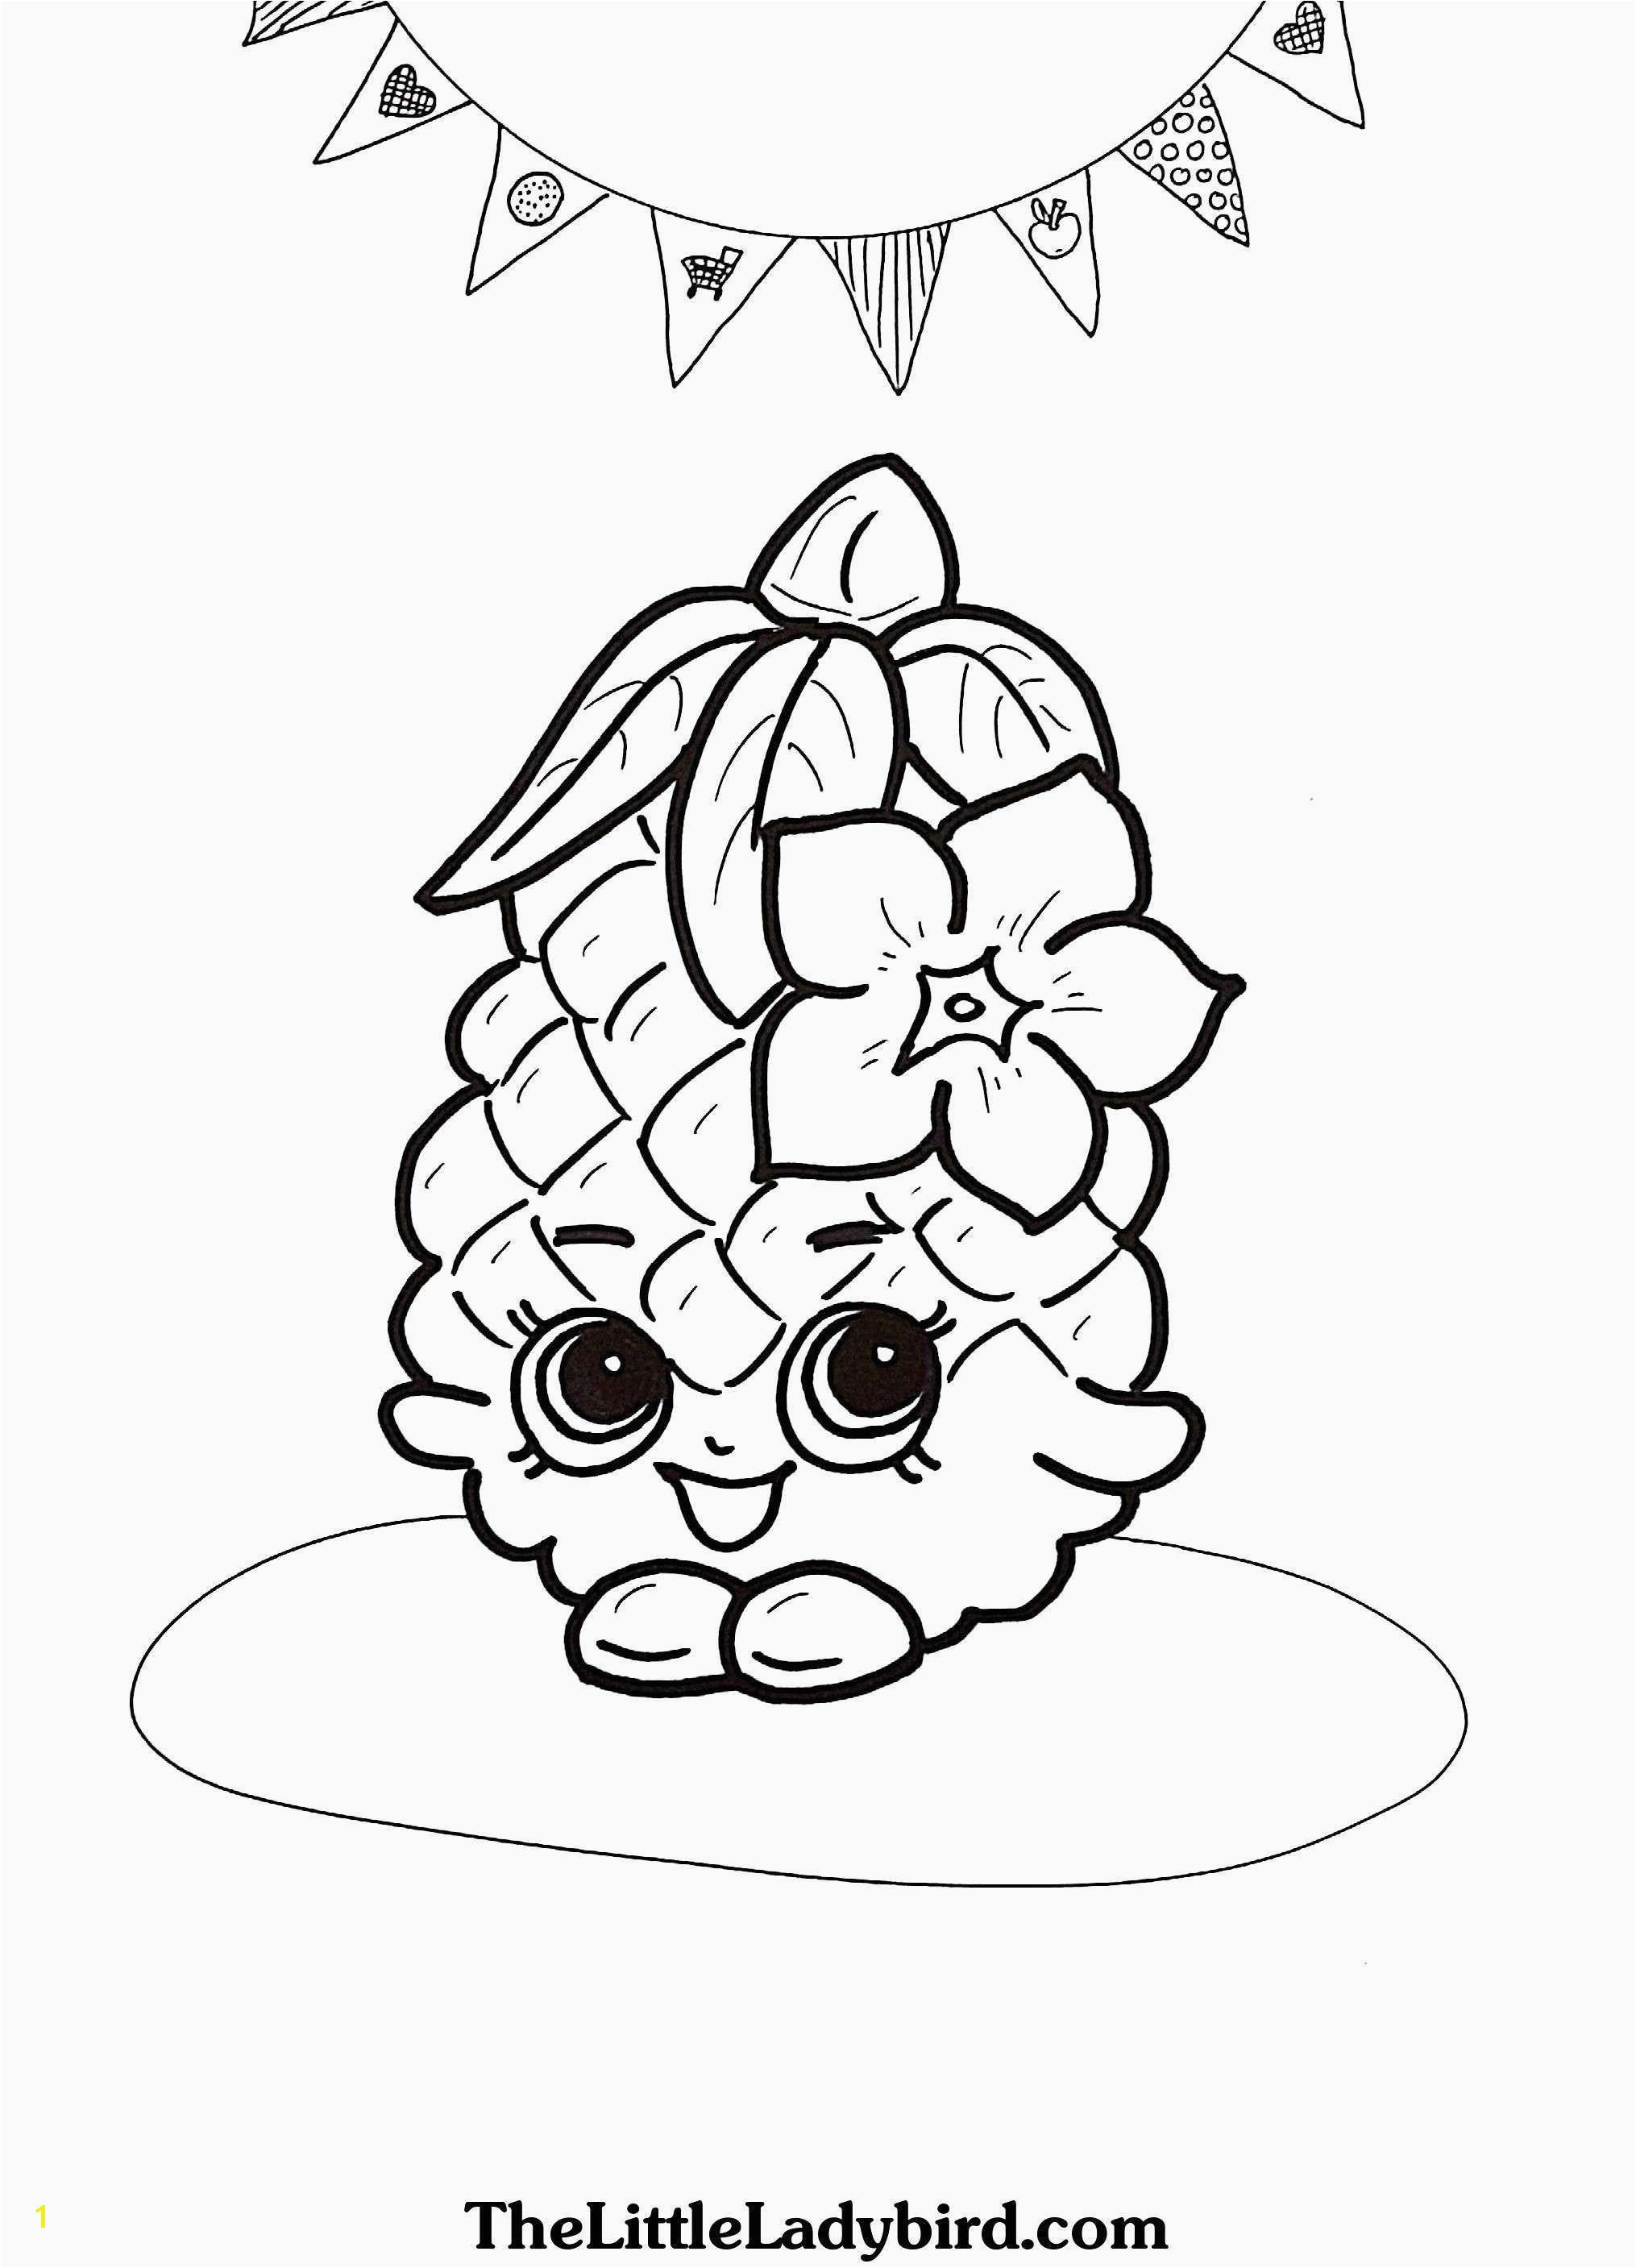 Printable Elmo Christmas Coloring Pages Elmo Christmas Coloring Pages